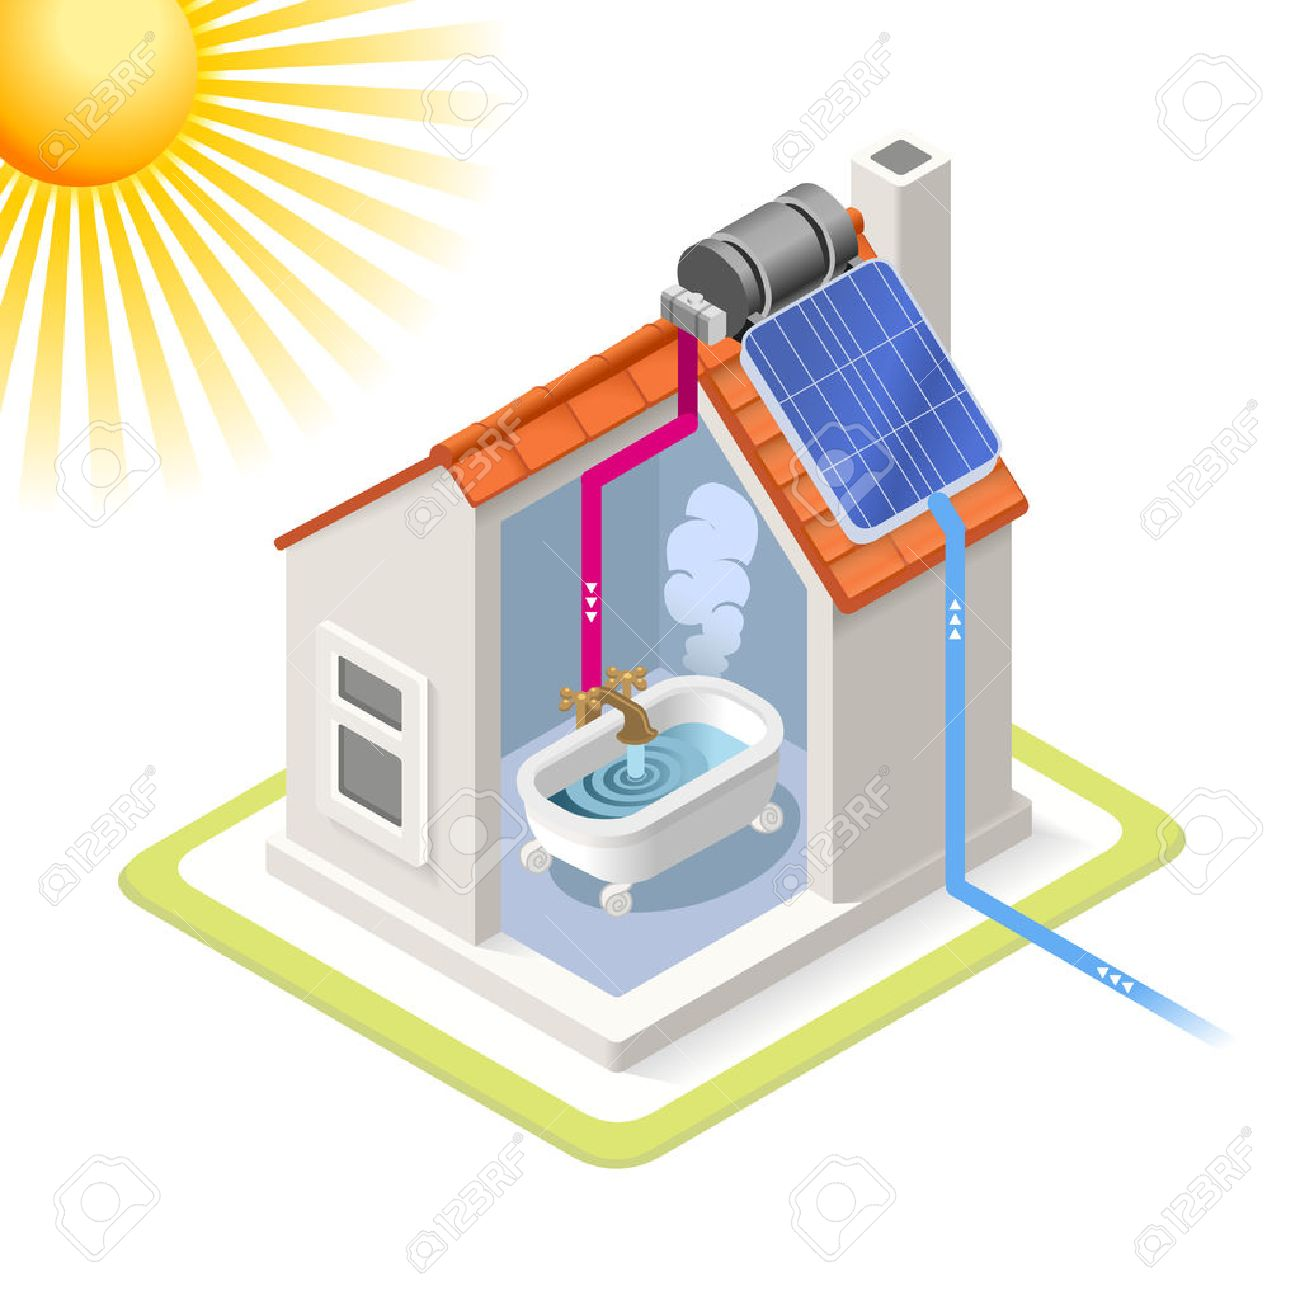 Beautiful Clean Energy House Solar Panels Infographic Icon Concept. Isometric 3d  Soften Colors Elements. Heating